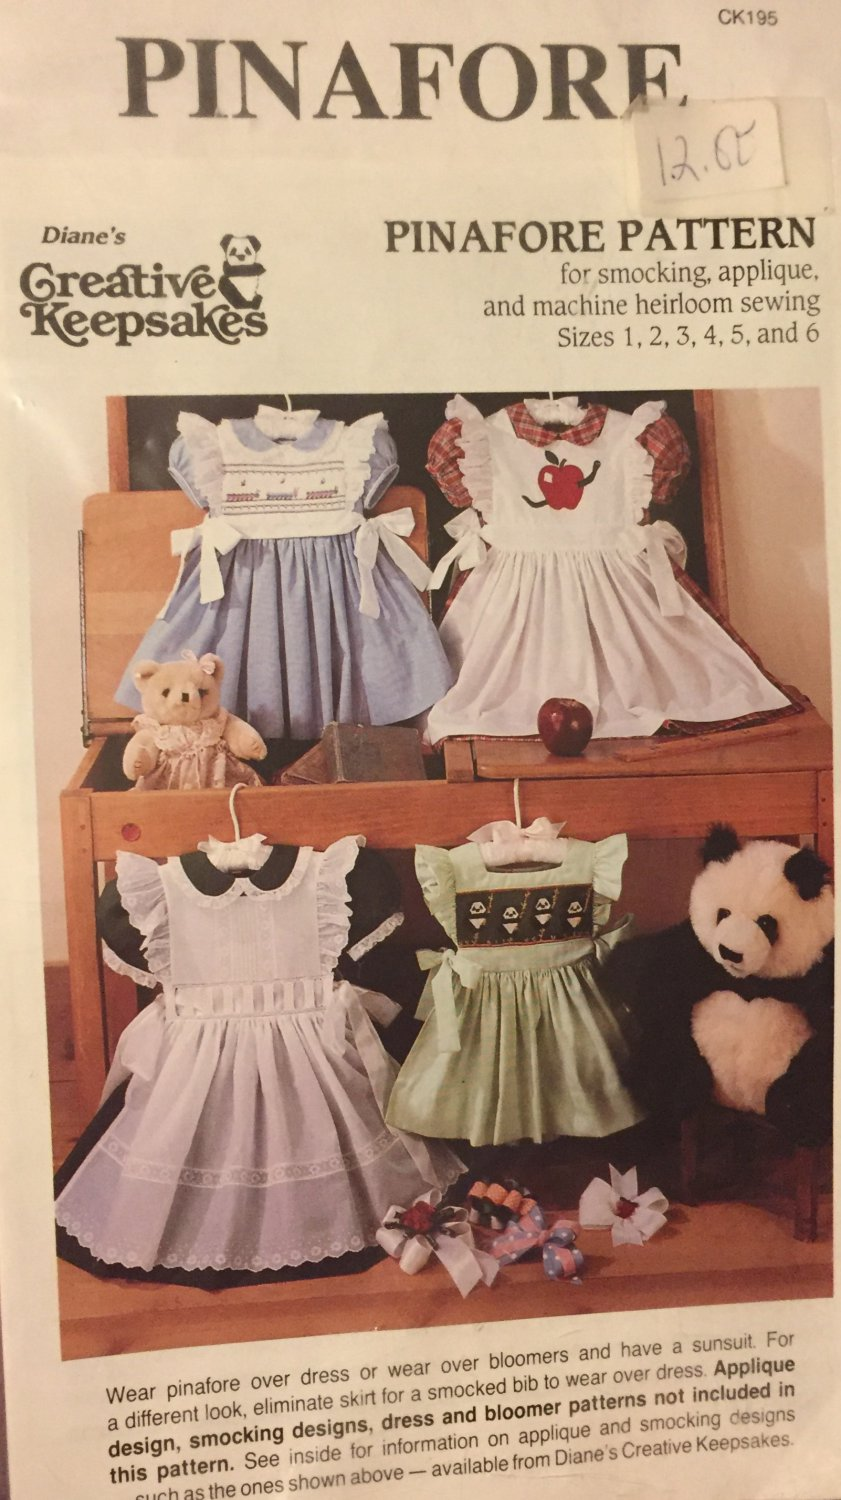 Child's Pinafore Sewing Pattern for Smocking, Applique, and machine heirloom sewing sizes 1 to 6